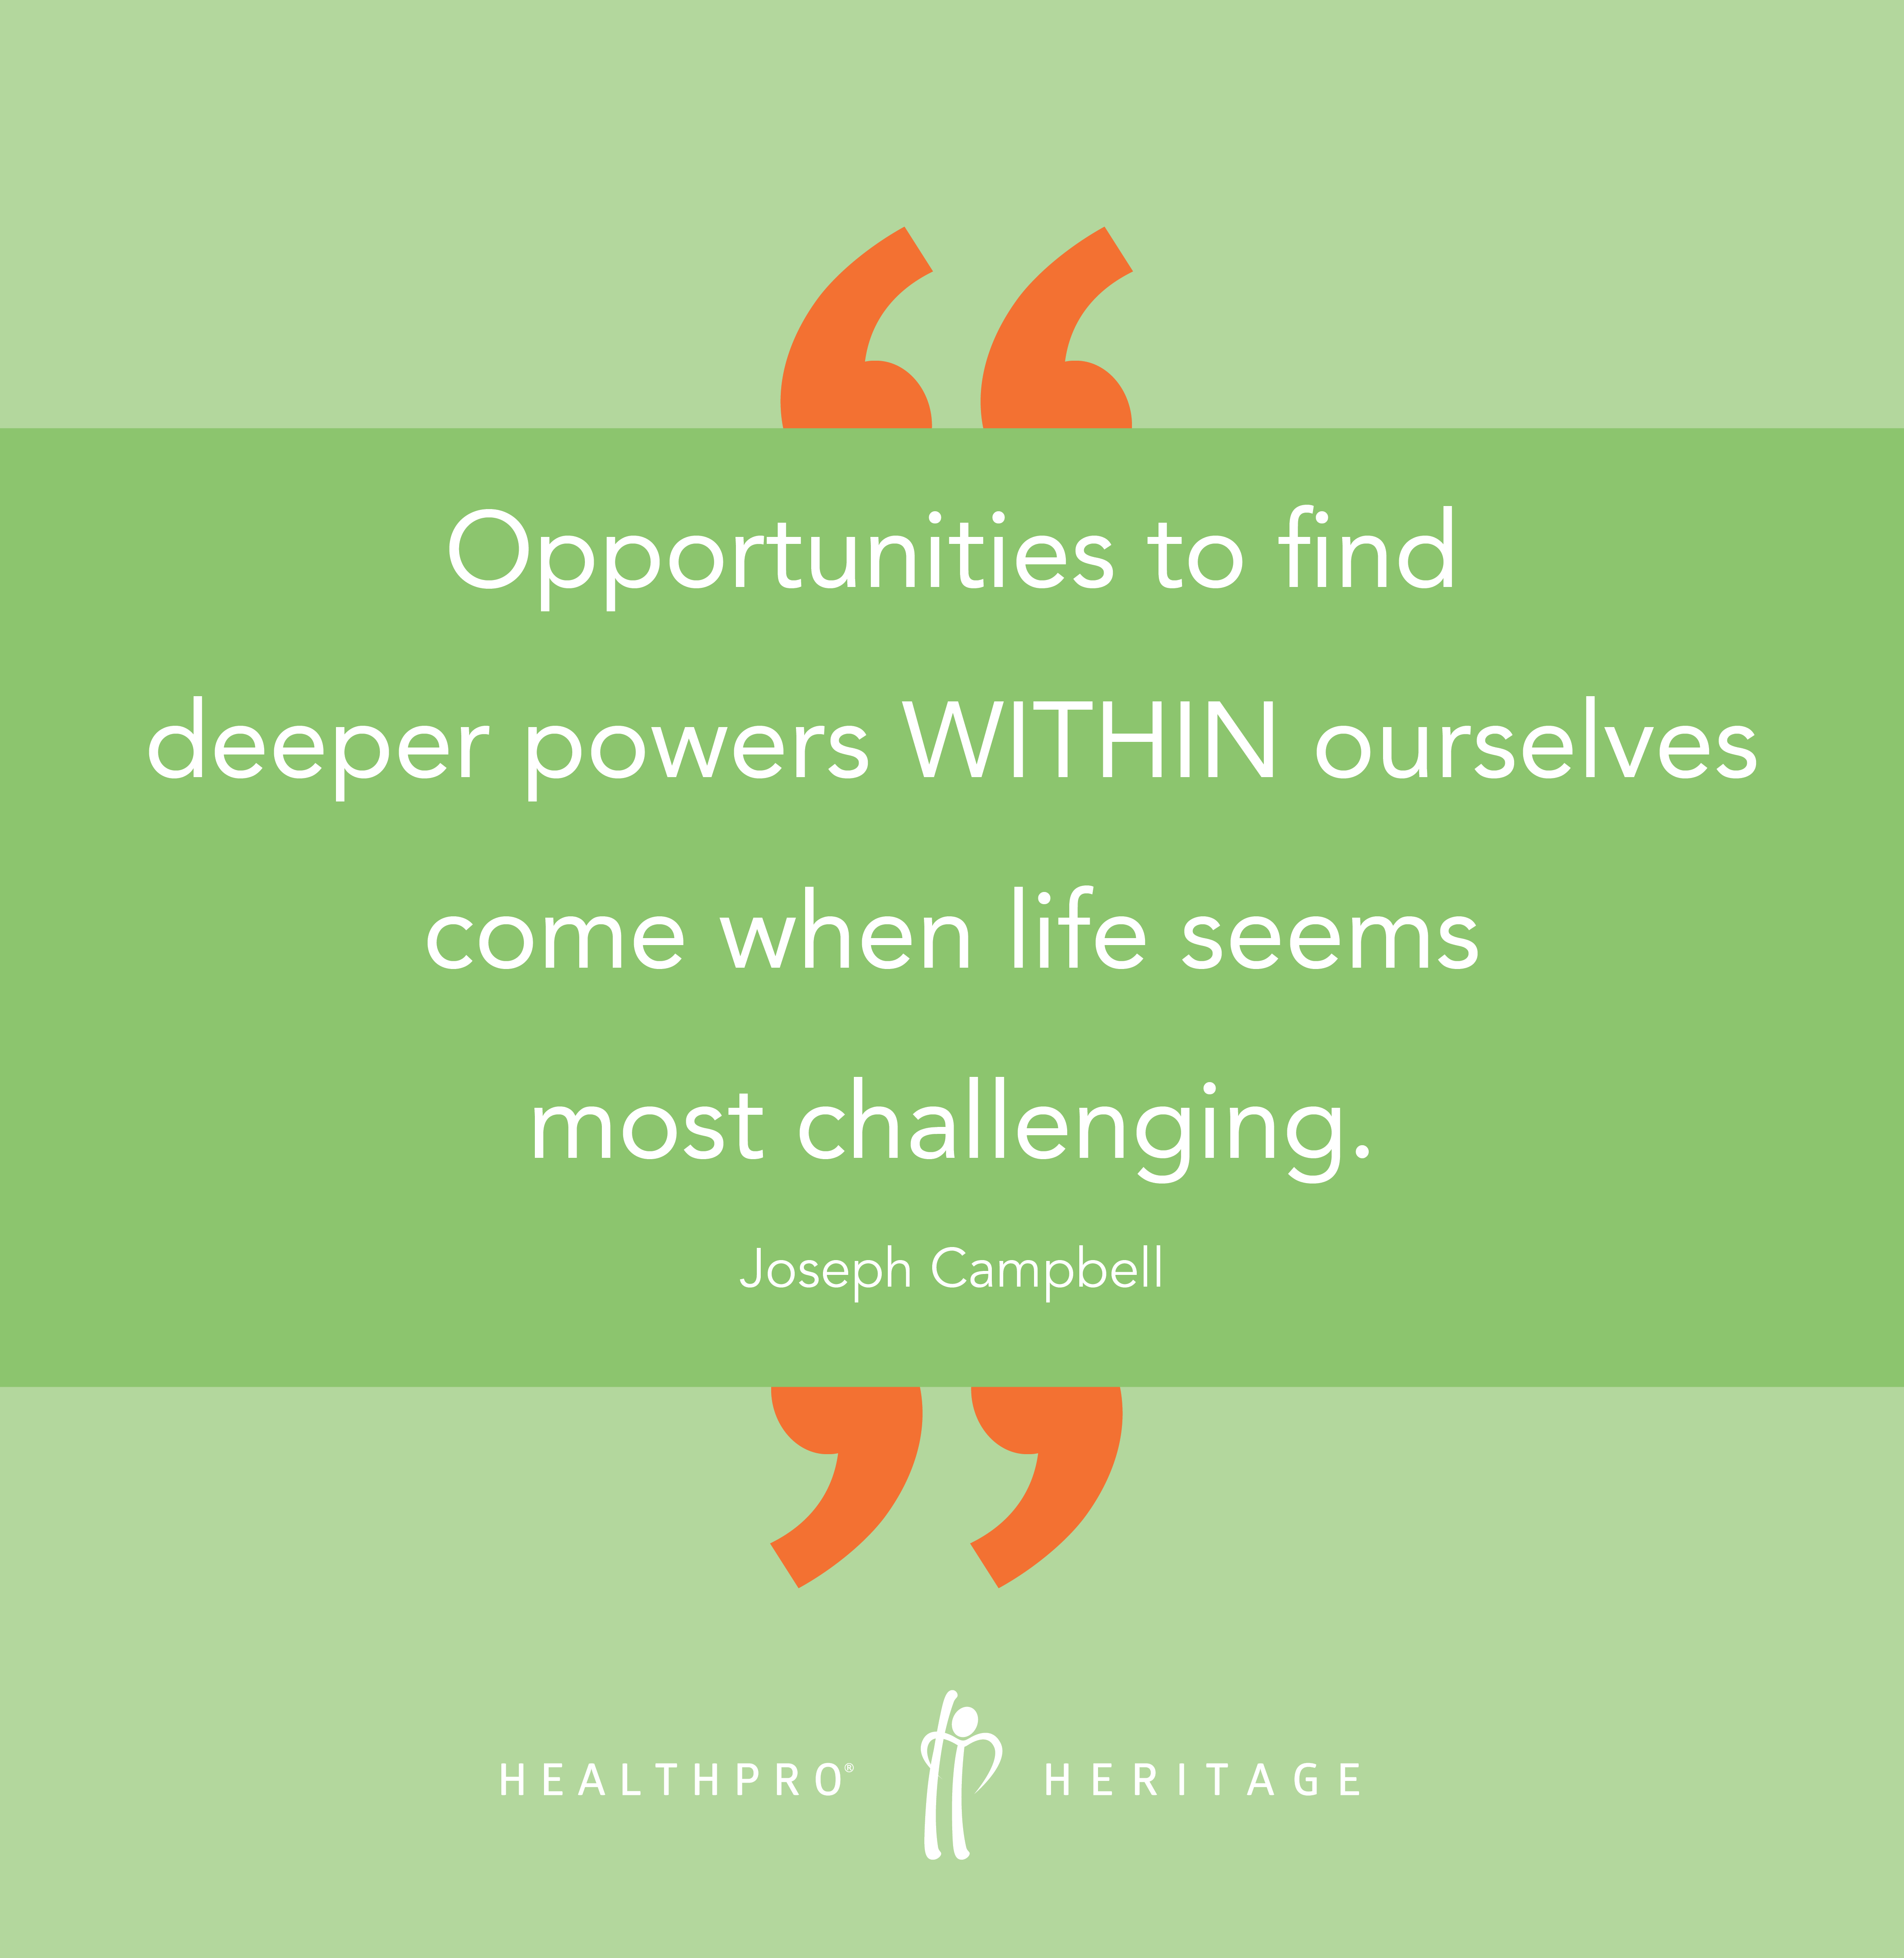 Opportunities to find deeper powers within ourselves come when life seems most challenging. - Joseph Campbell